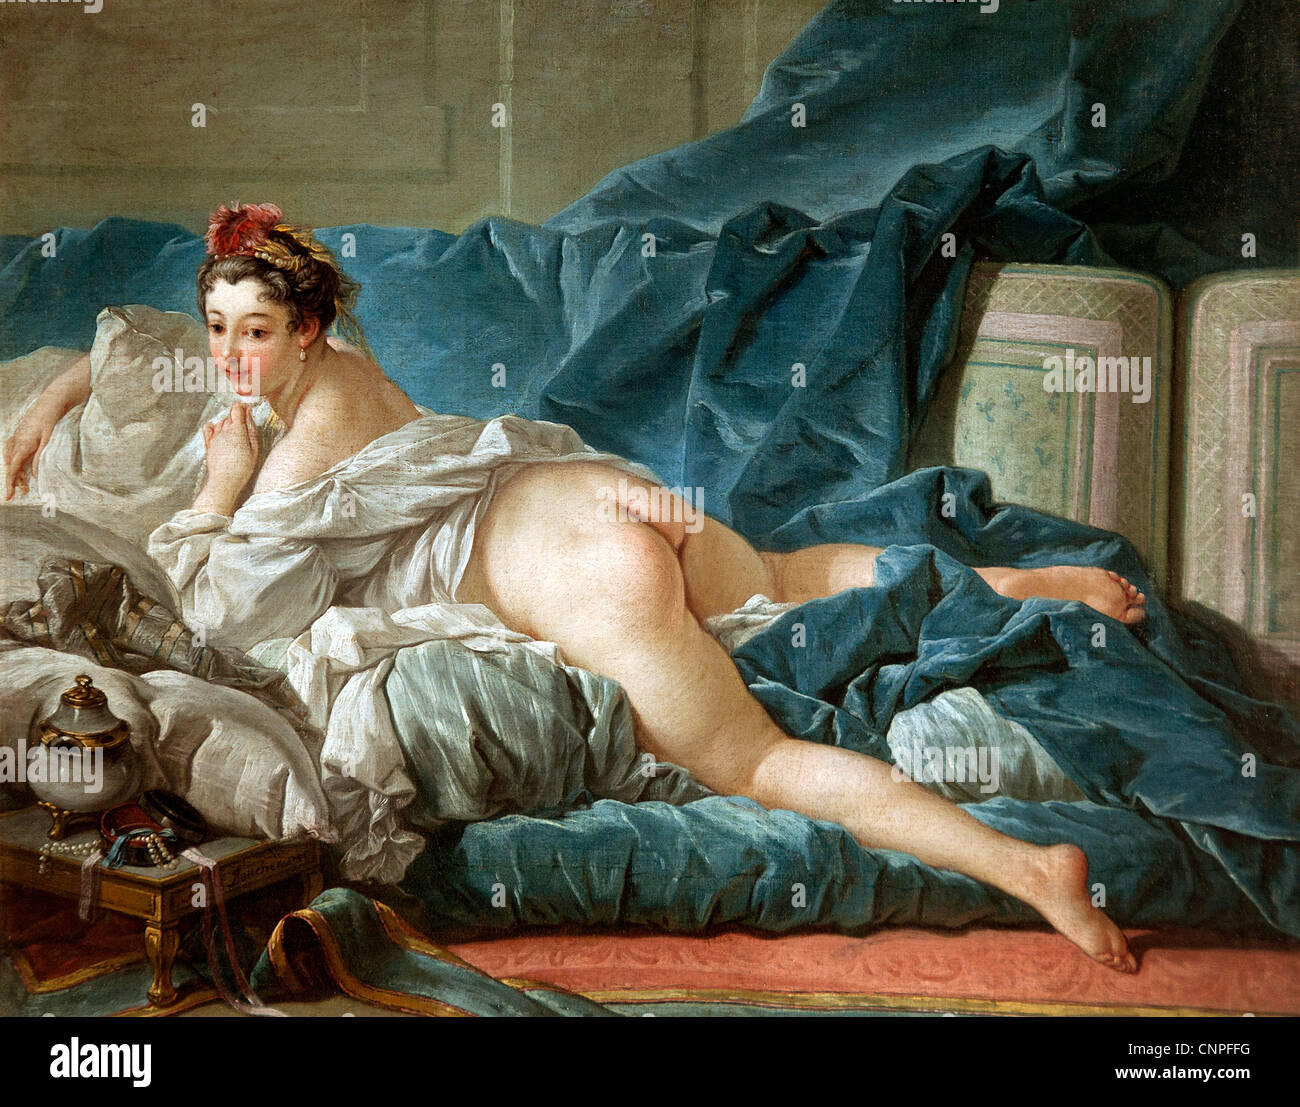 L'Odalisque 1745 by BOUCHER, Francois 1703-70  France French - Stock Image